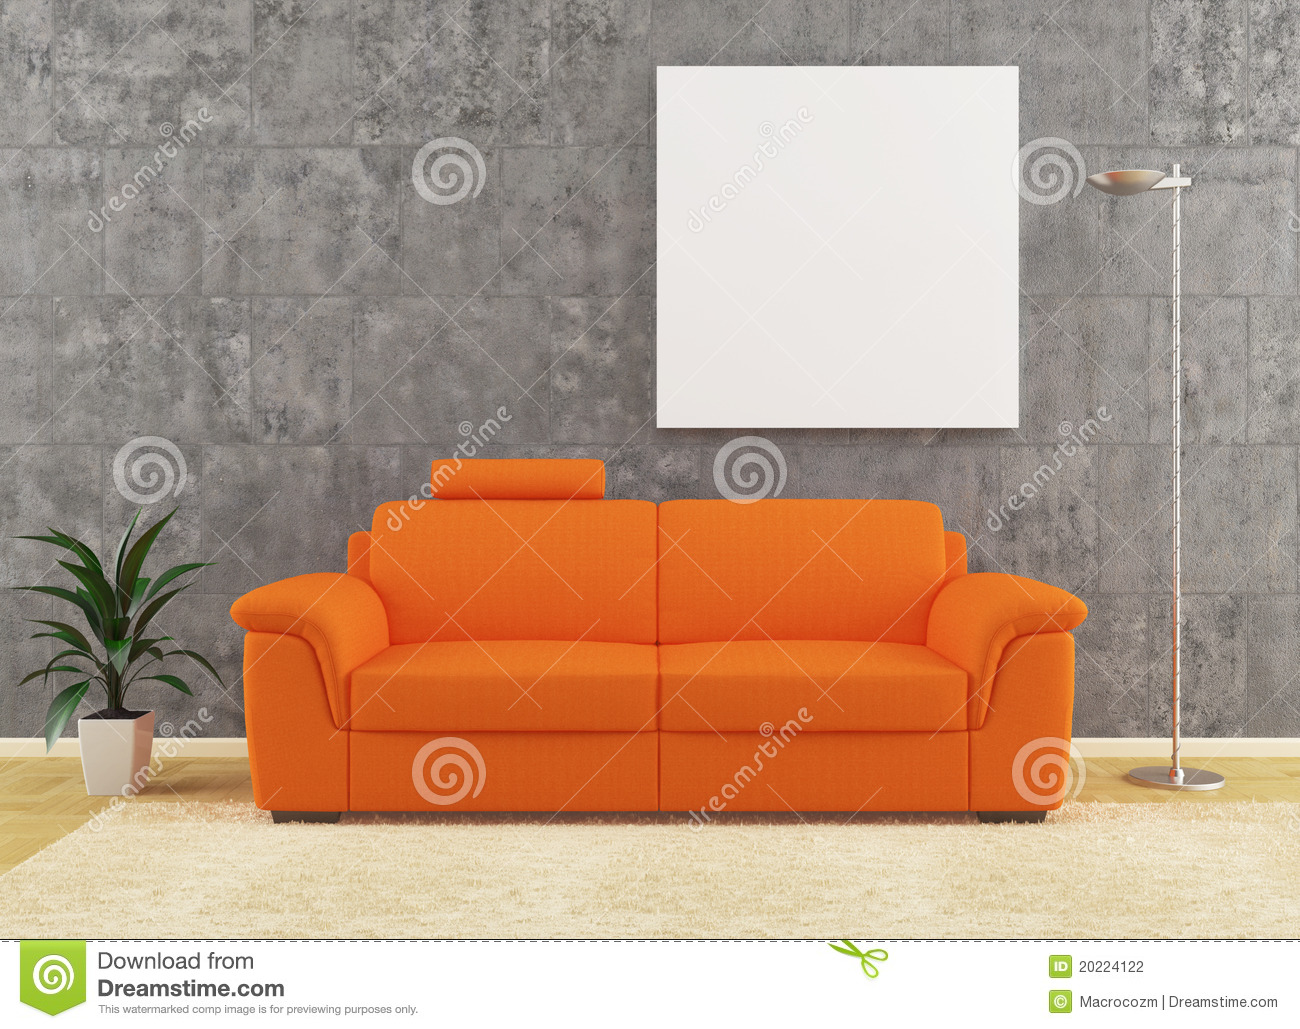 Modern Orange Sofa On Dirty Wall Interior Design Stock Photography  Image 20224122